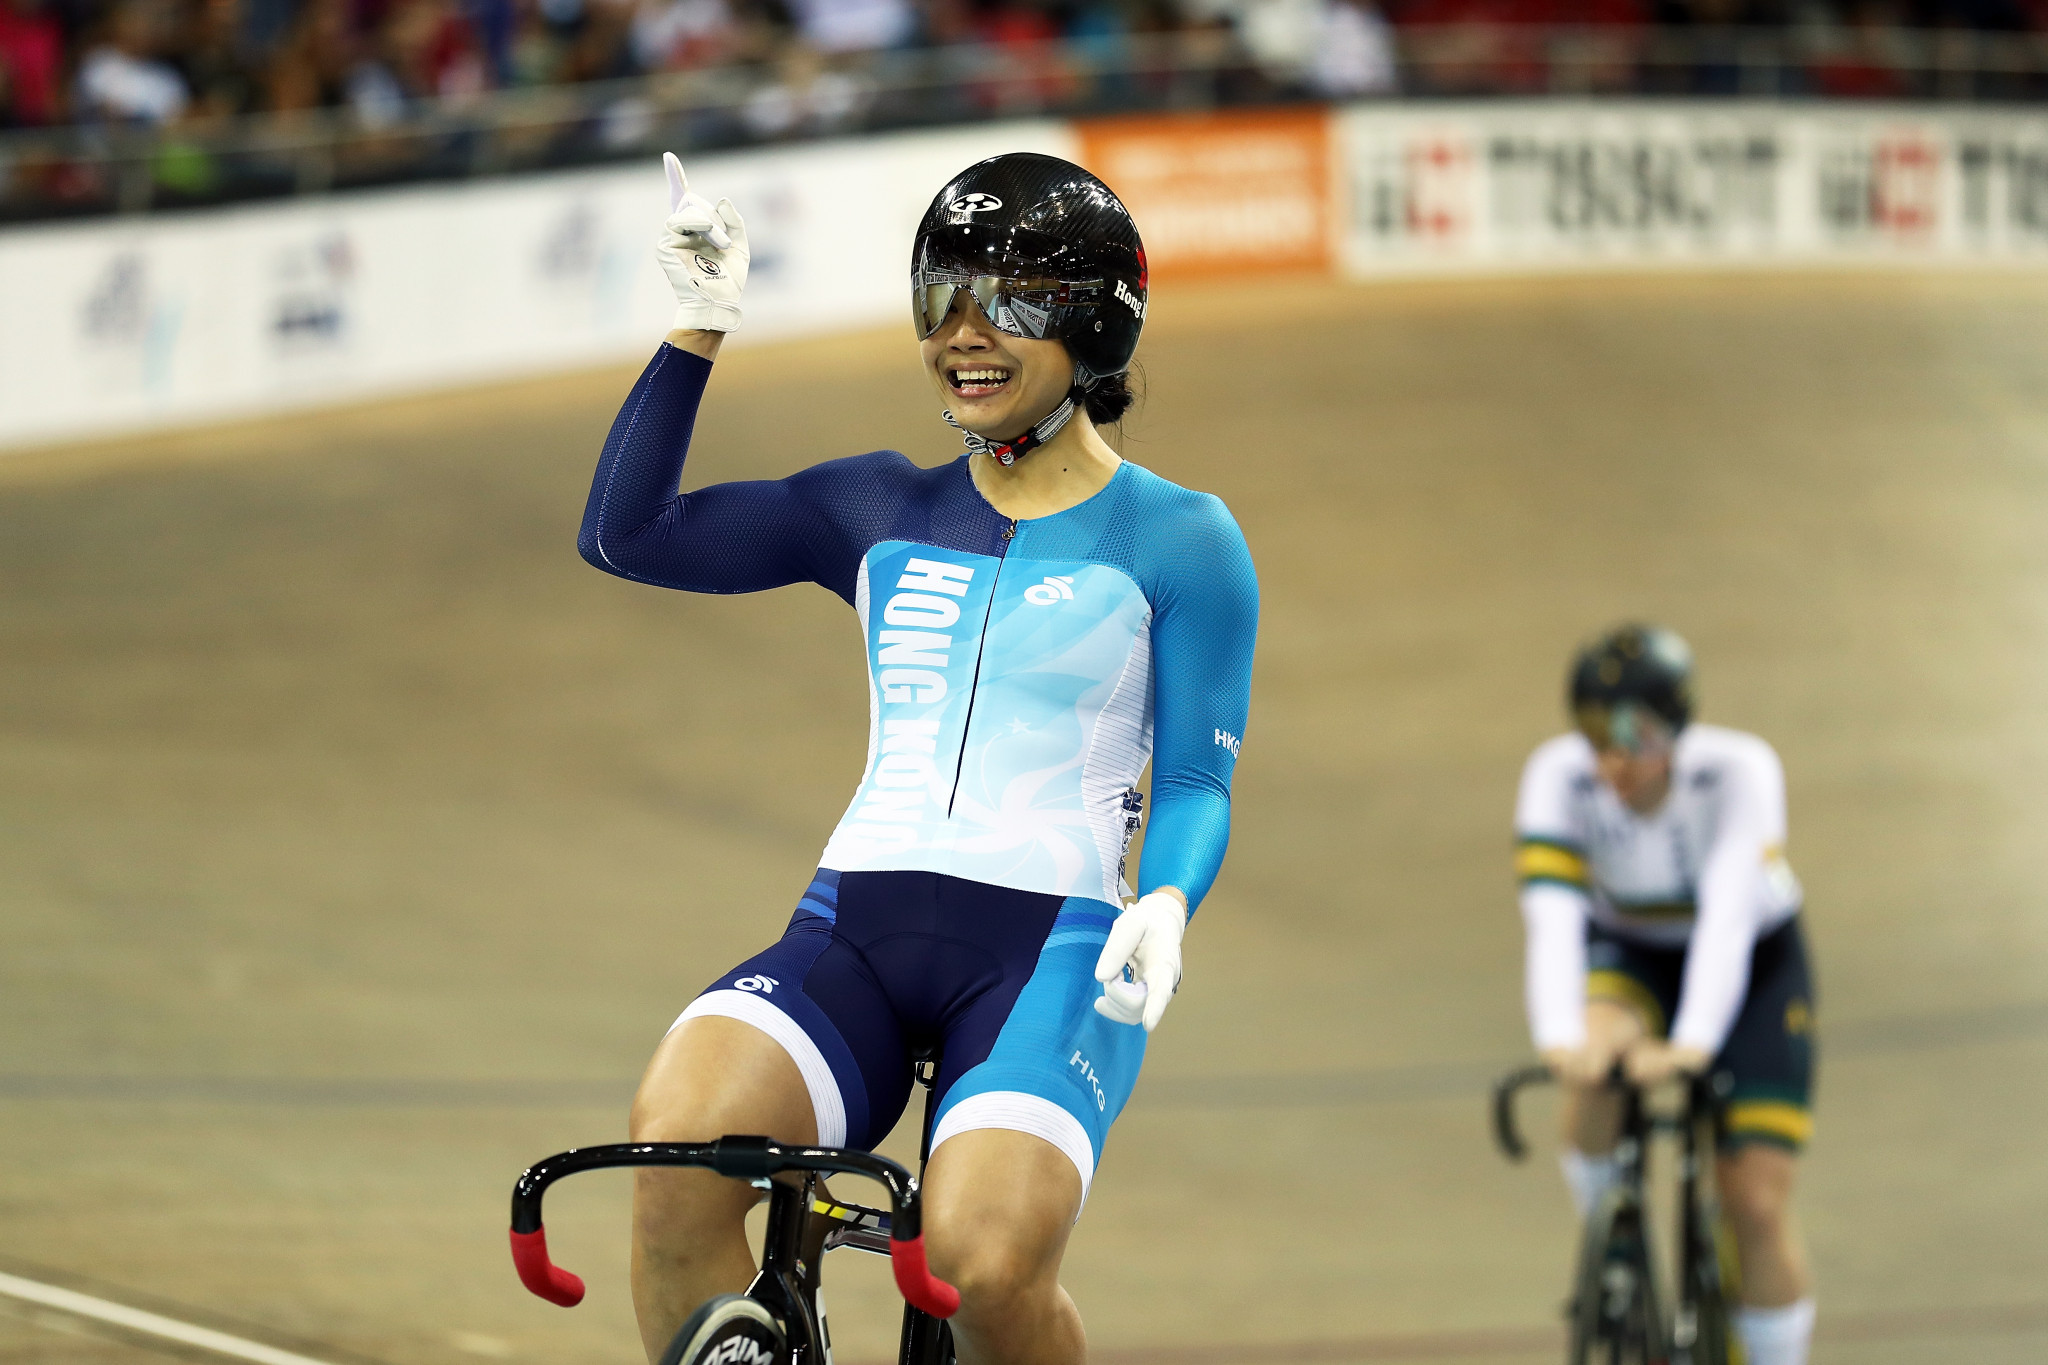 UCI Track Cycling World Cup season to end in Hong Kong